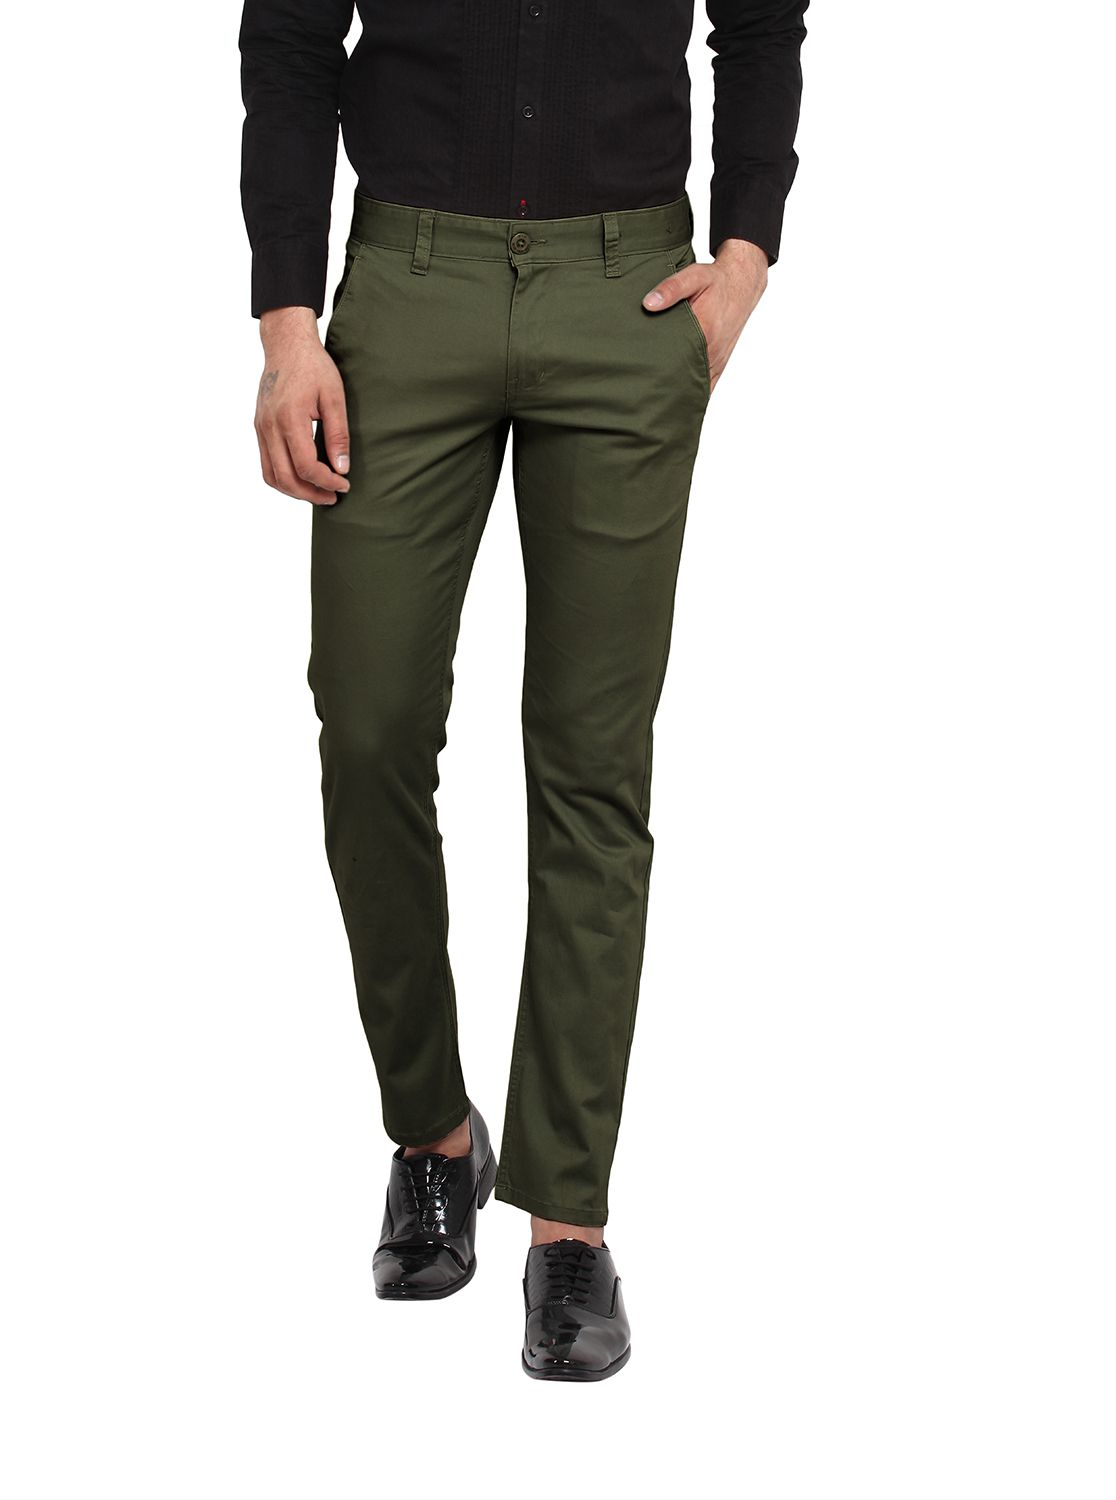 Wear Your Mind Green Slim -Fit Flat Chinos